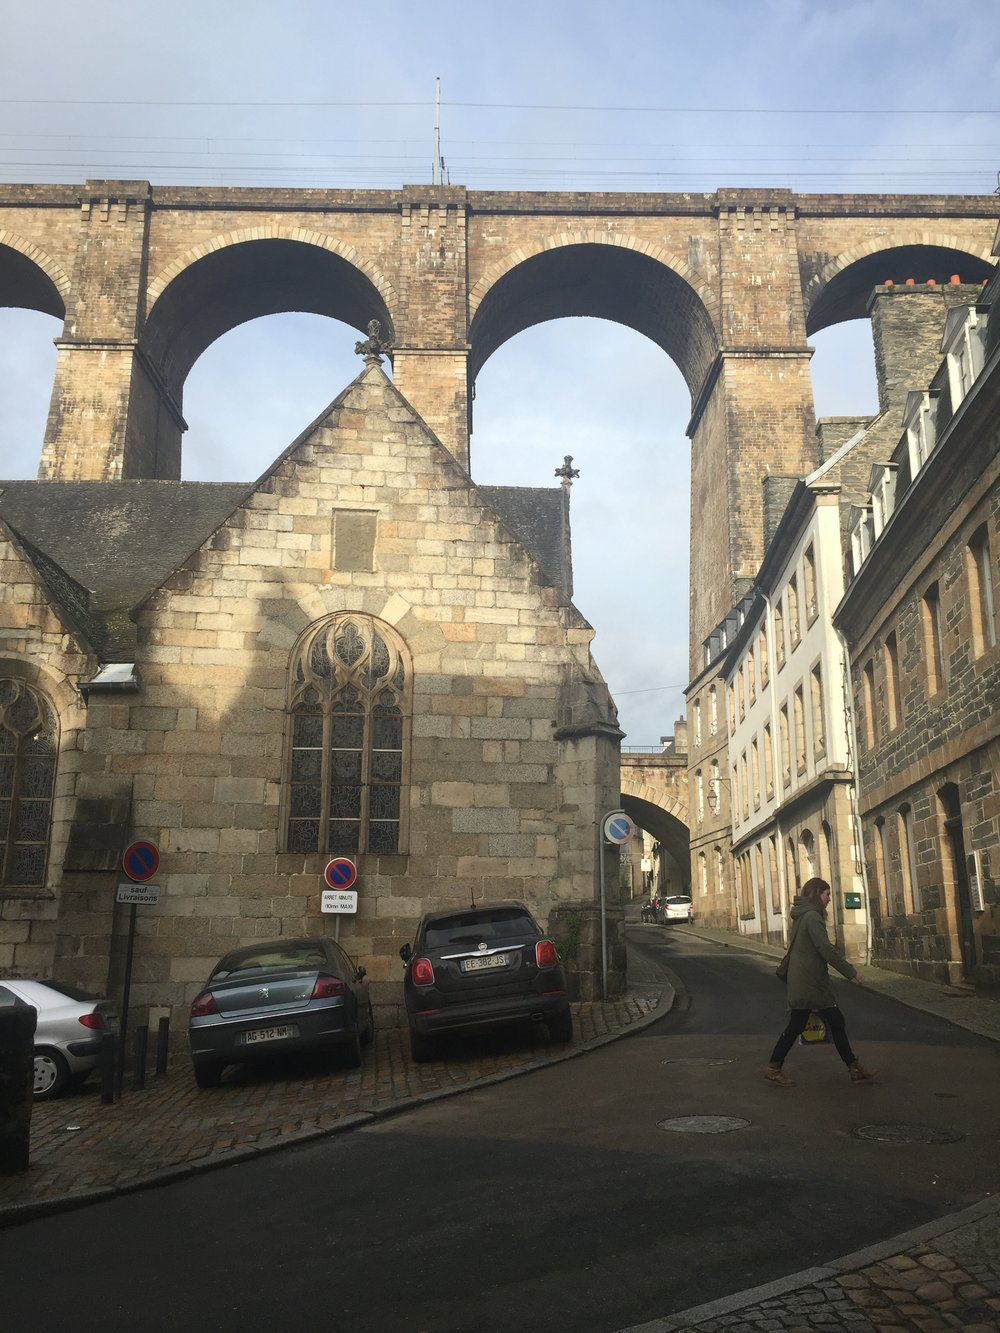 Morlaix Viaduct towering over Morlaix